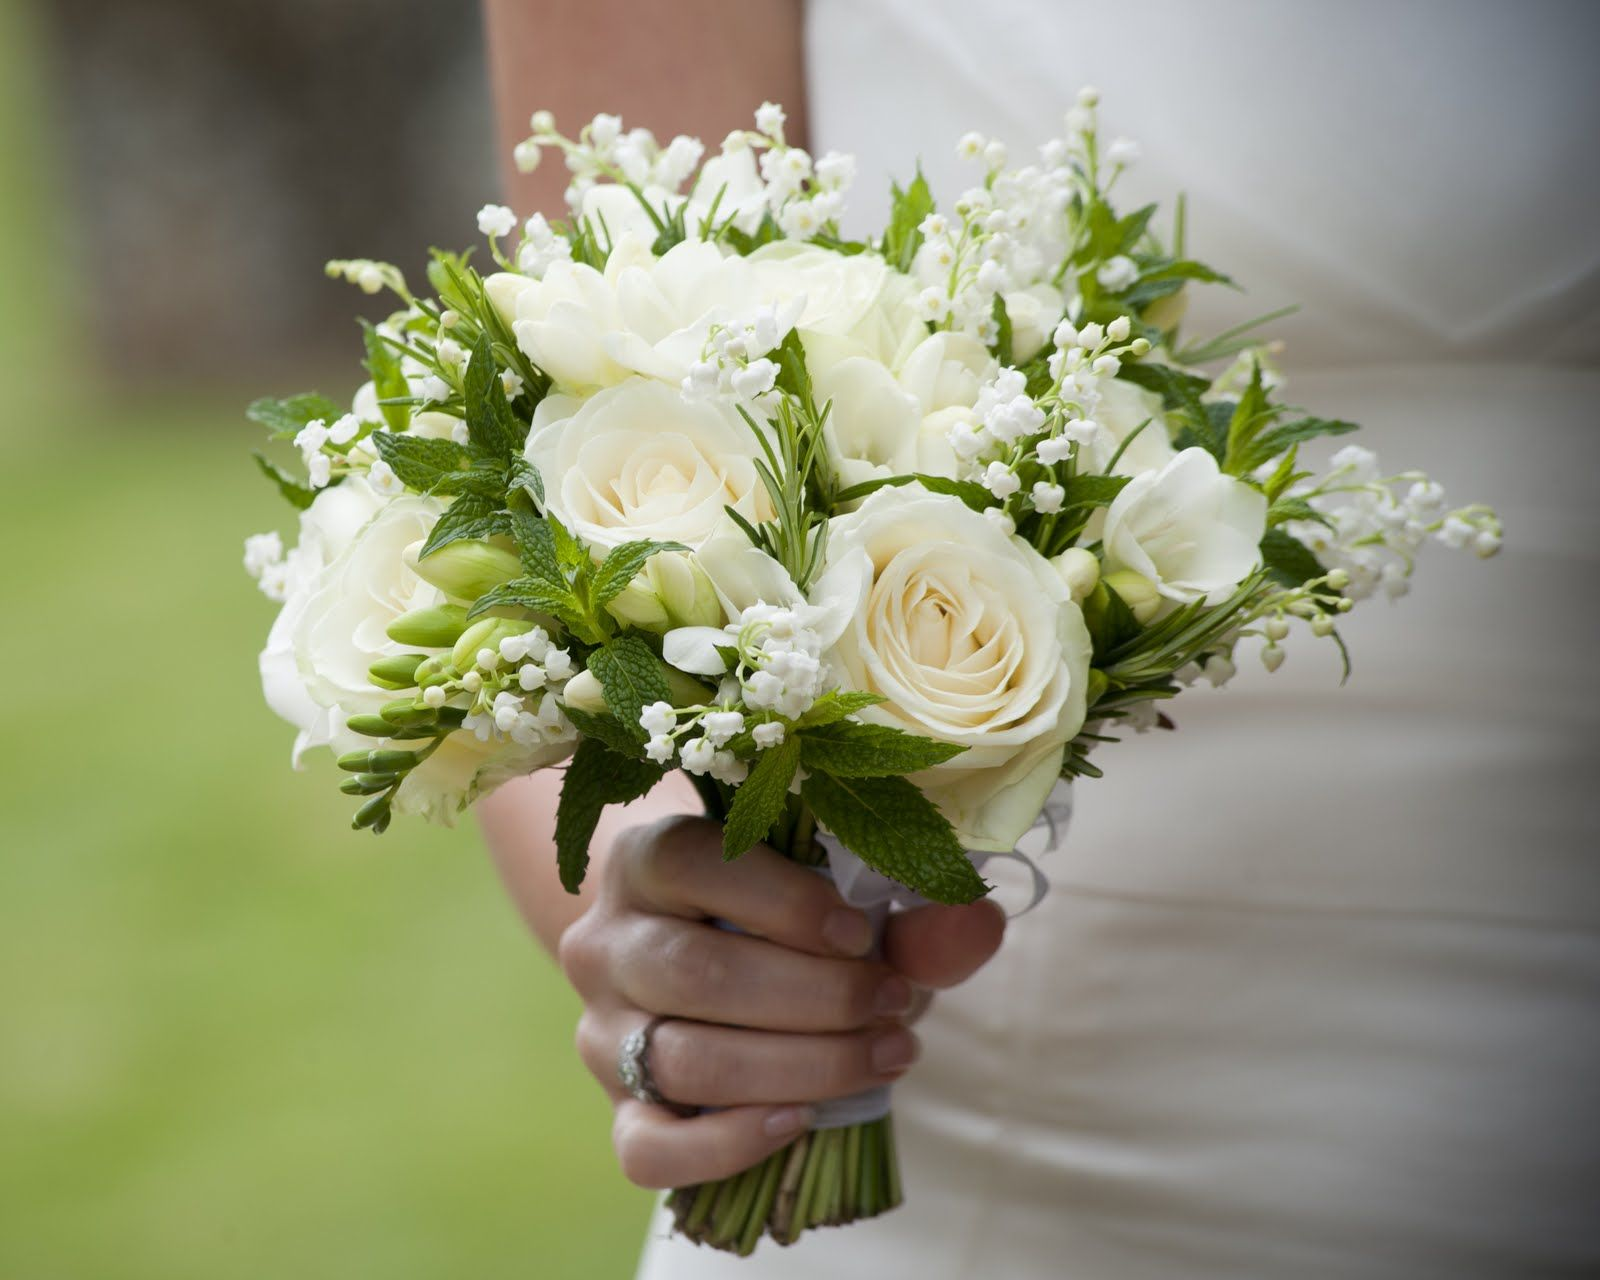 silk wedding bouquets to choose for the classy bridal 3 - Silk Wedding Bouquets to Choose for The Classy Bridal